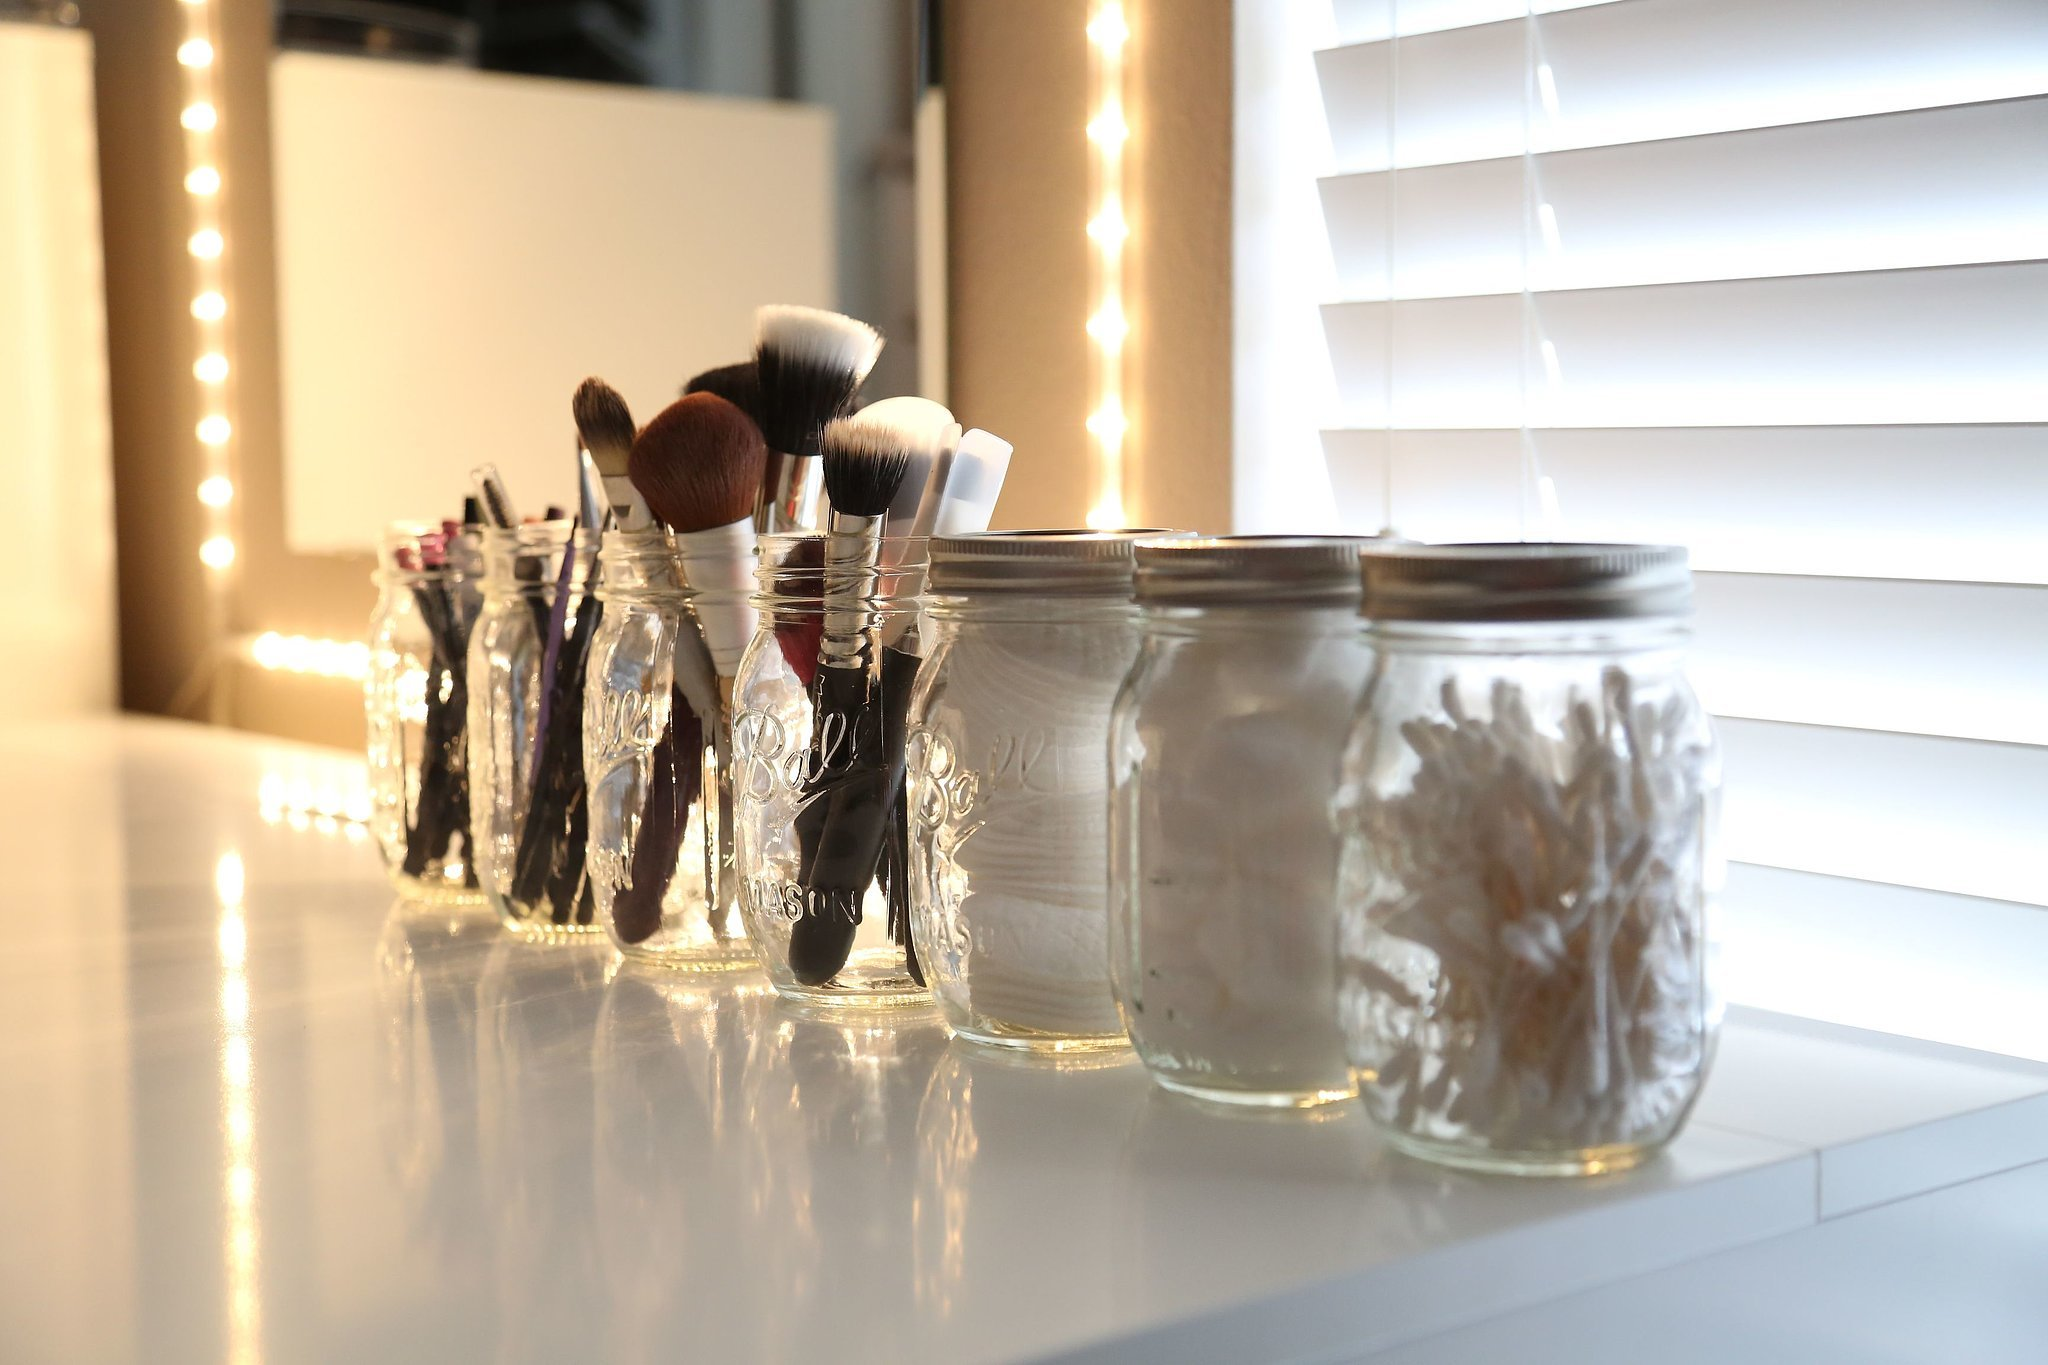 Makeup brushes in a mason jar